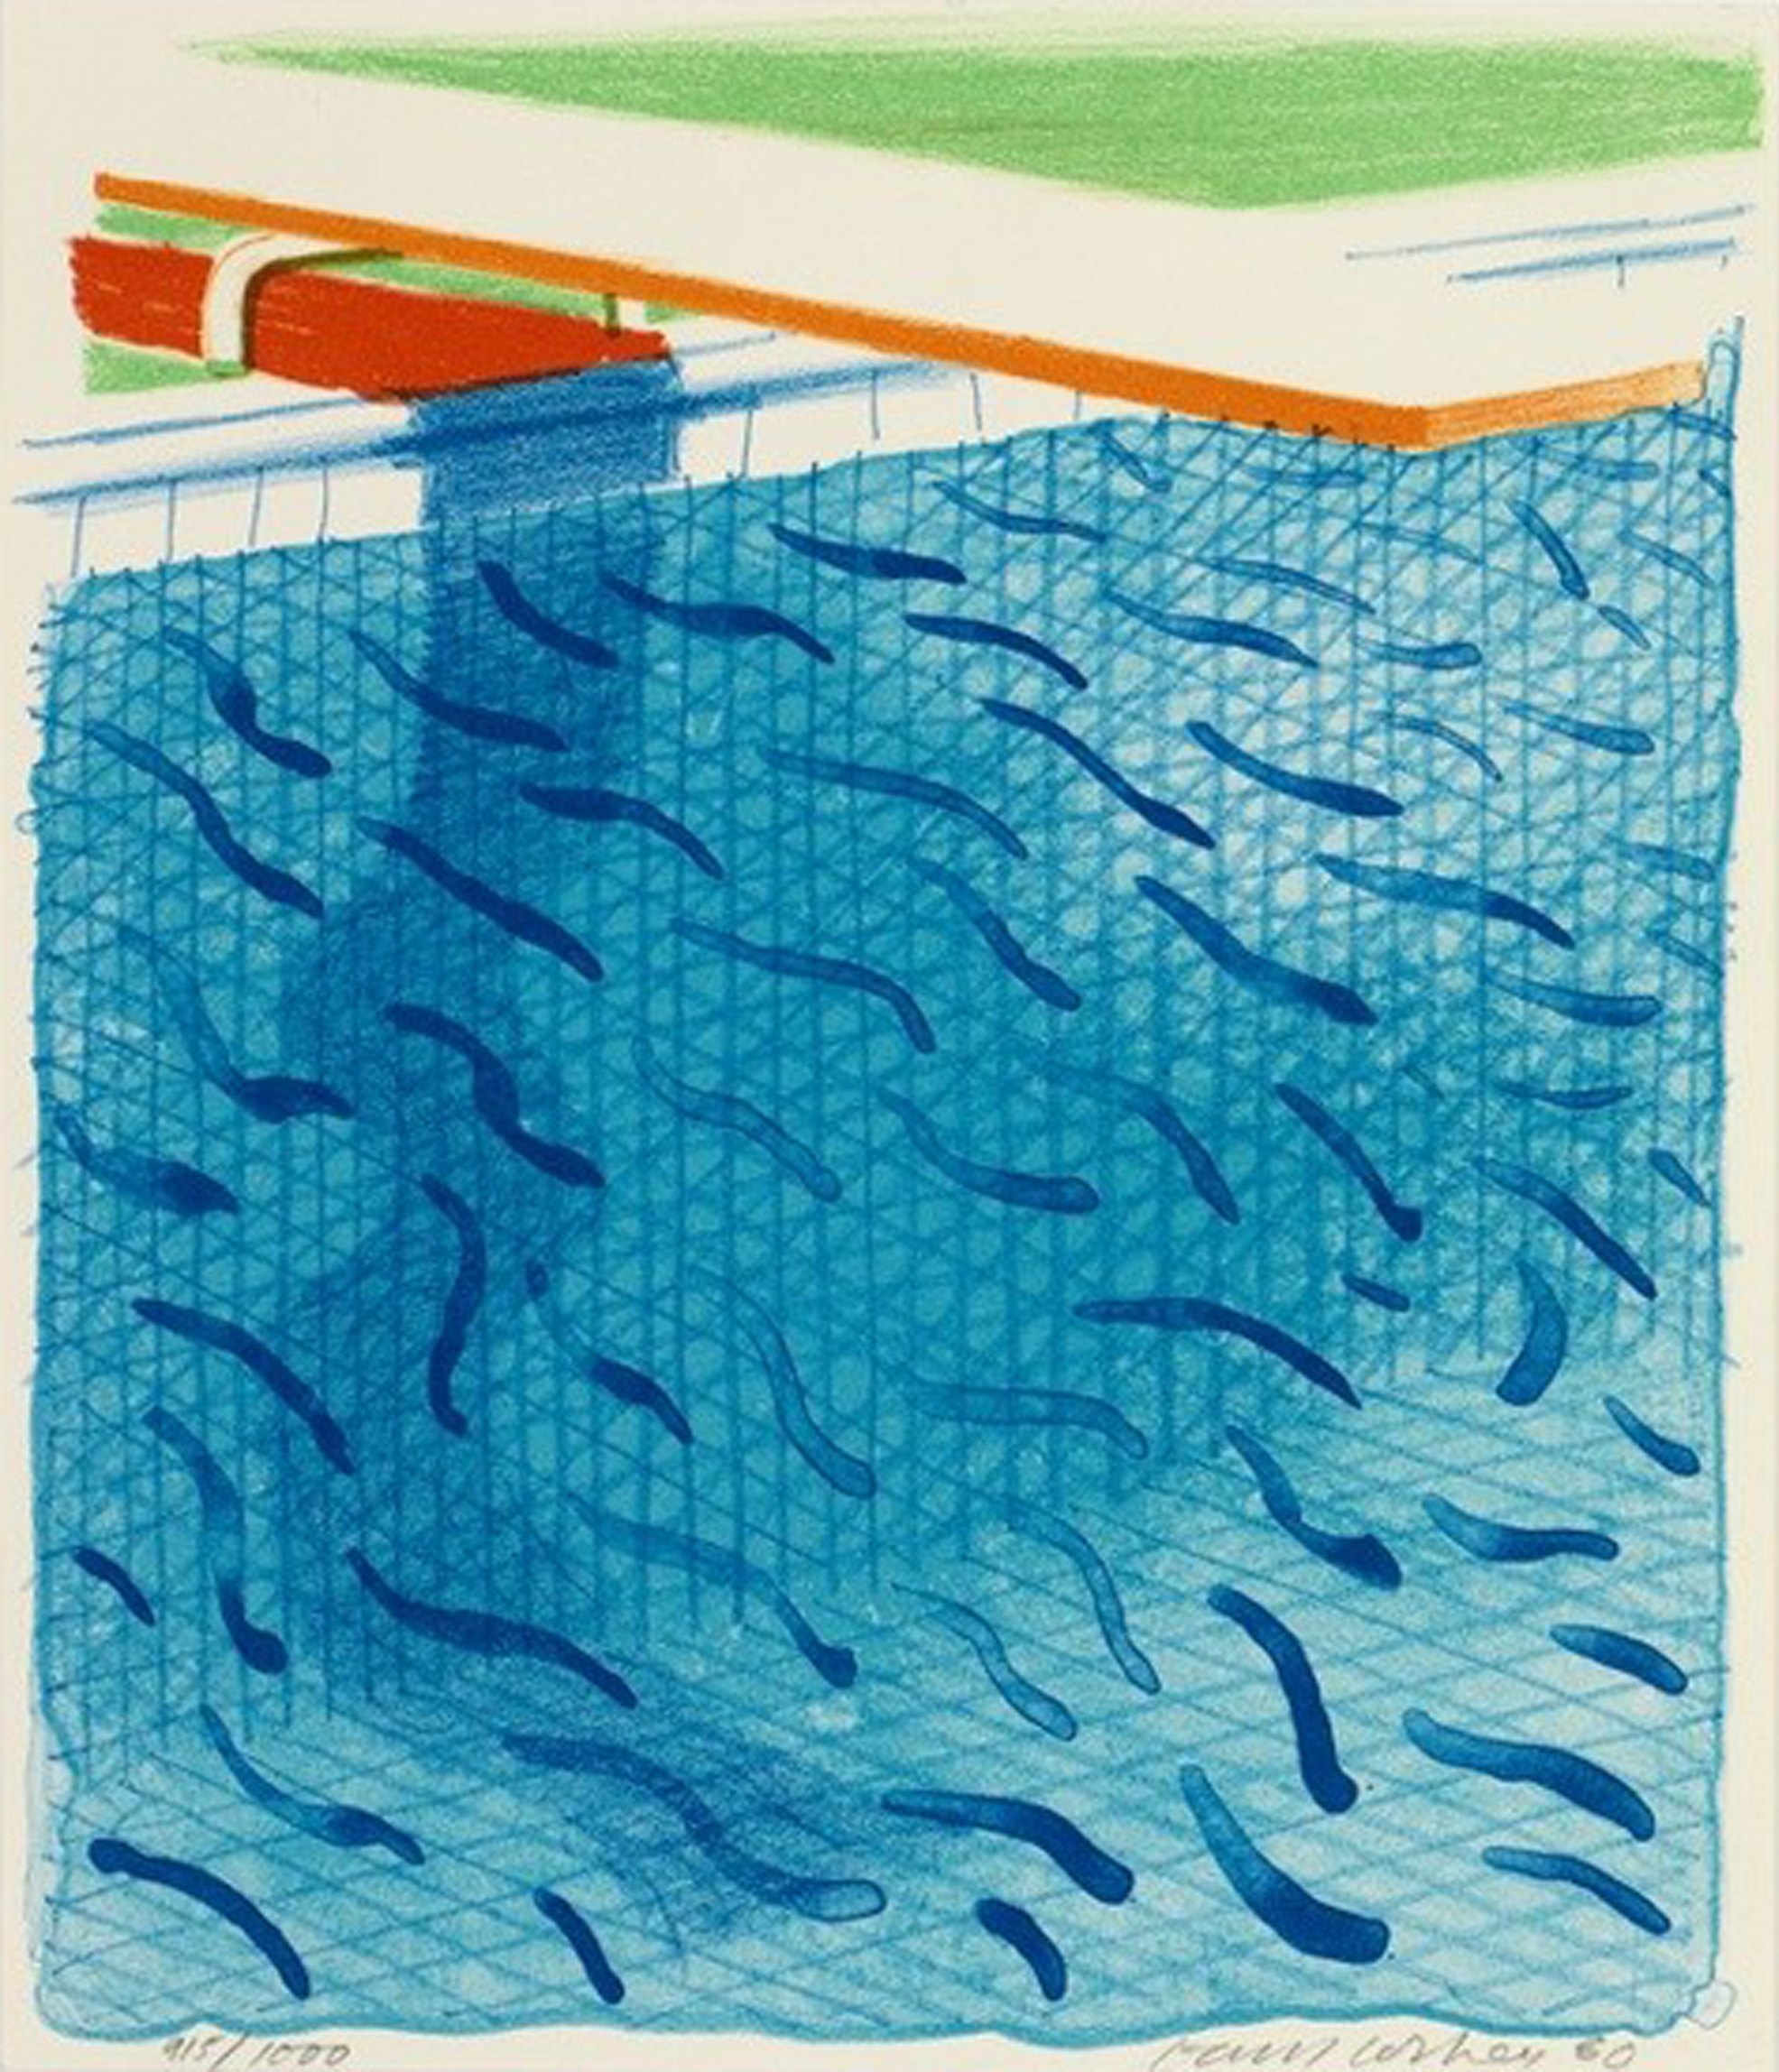 David Hockney, Pool Made with Paper and Blue Ink for Book